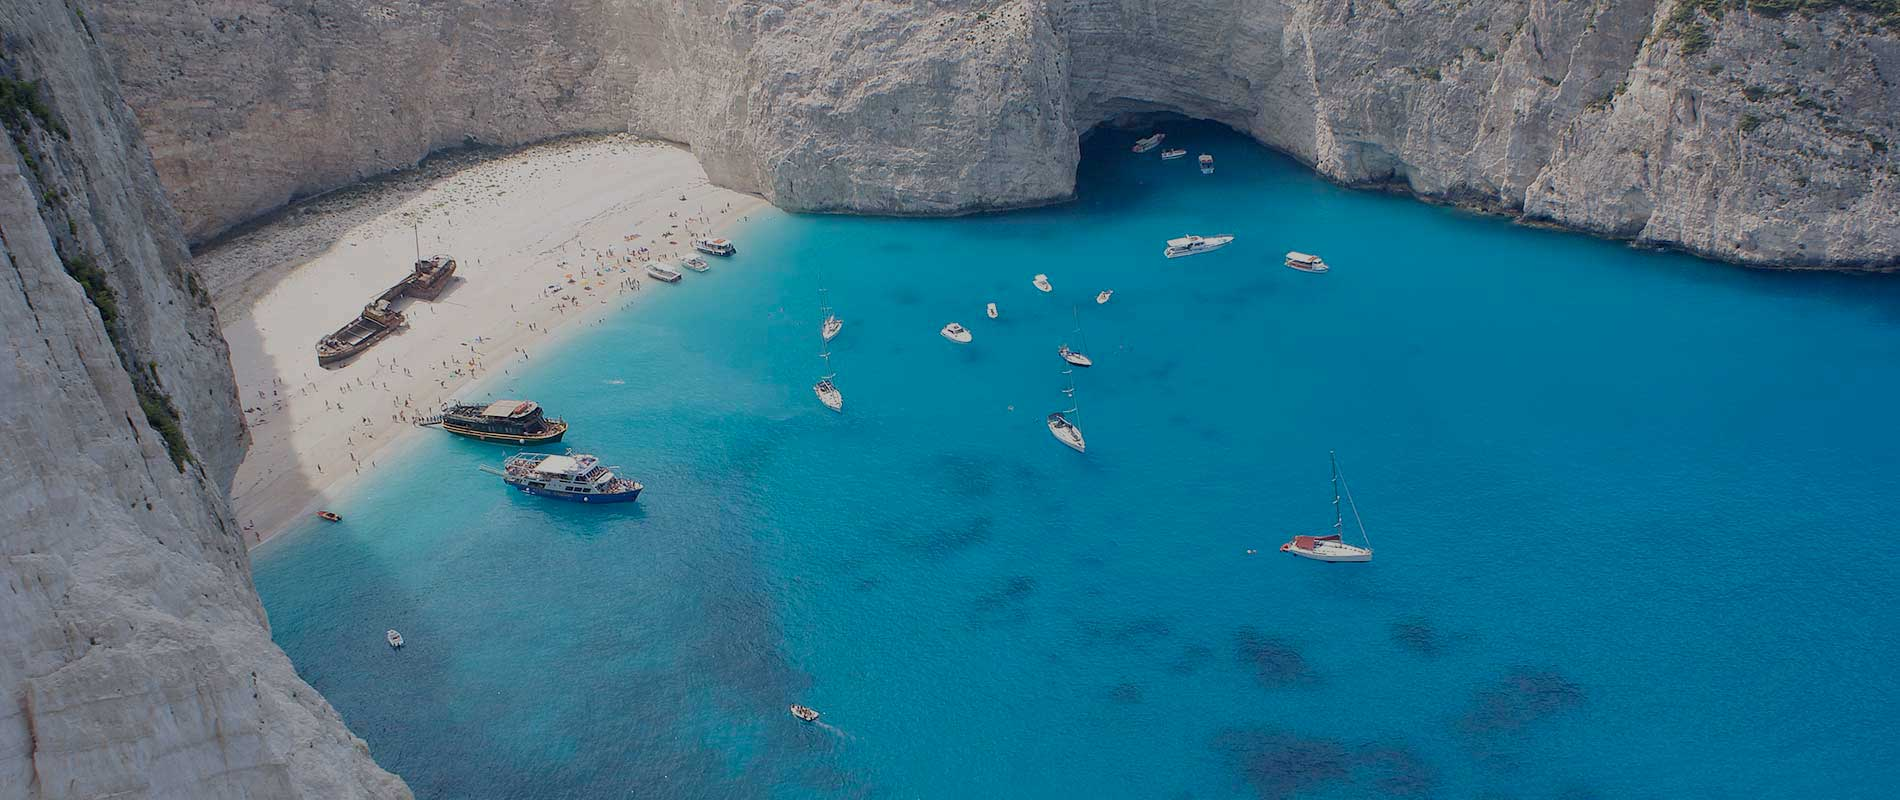 excursion-shipwreck-zante